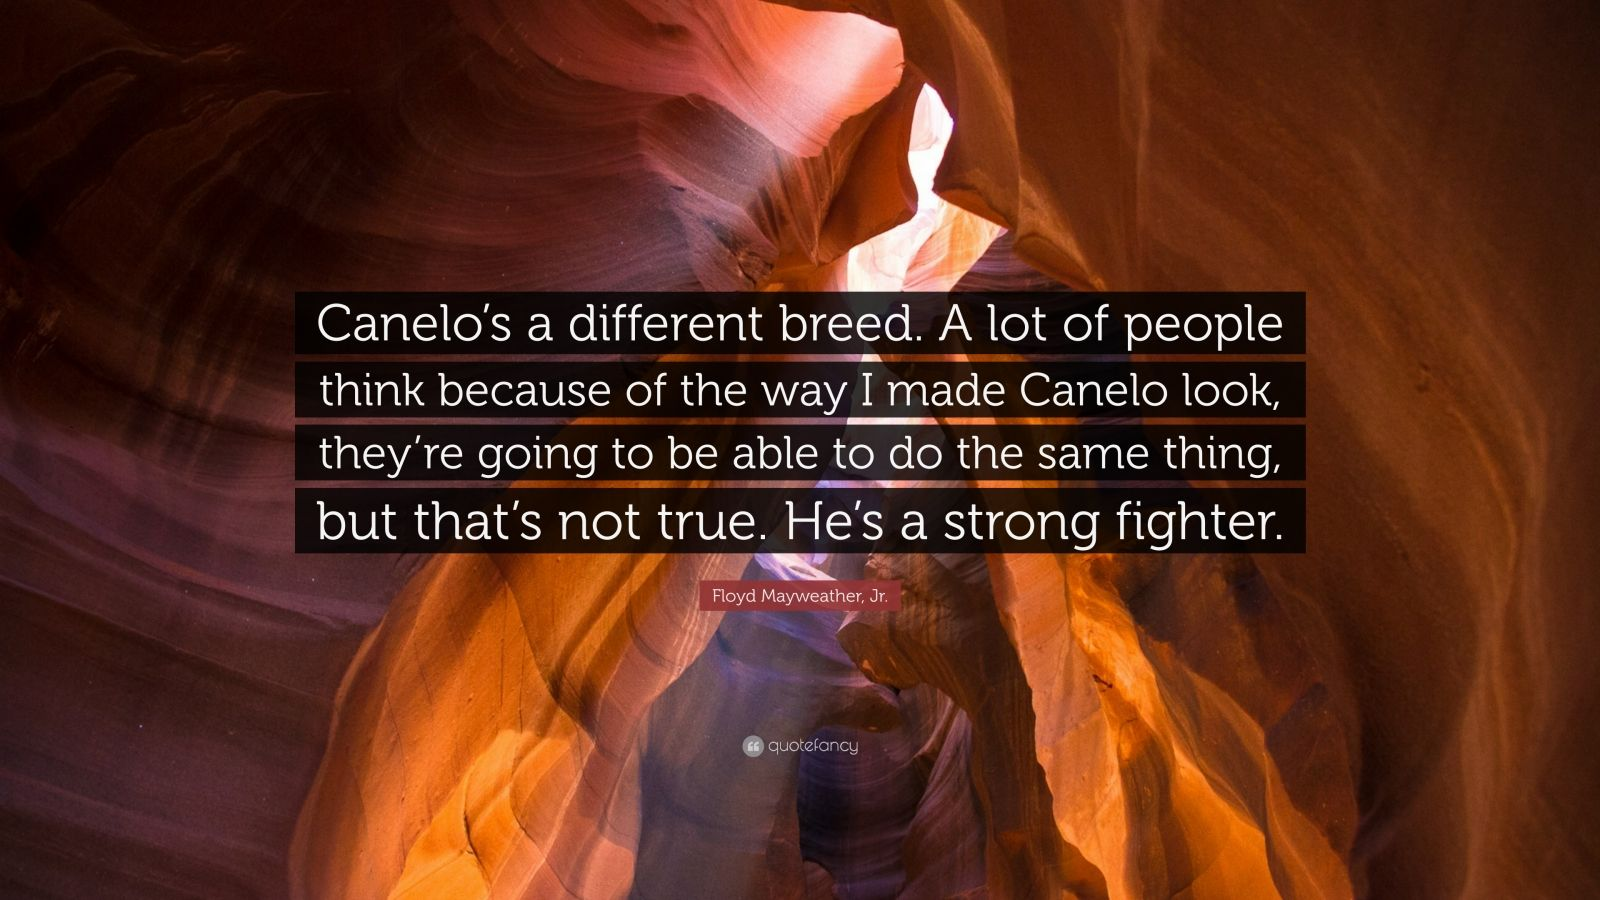 """Floyd Mayweather, Jr. Quote: """"Canelo's a different breed. A lot of people think because of the way I made Canelo look, they're going to be able to do the same thing, but that's not true. He's a strong fighter."""""""